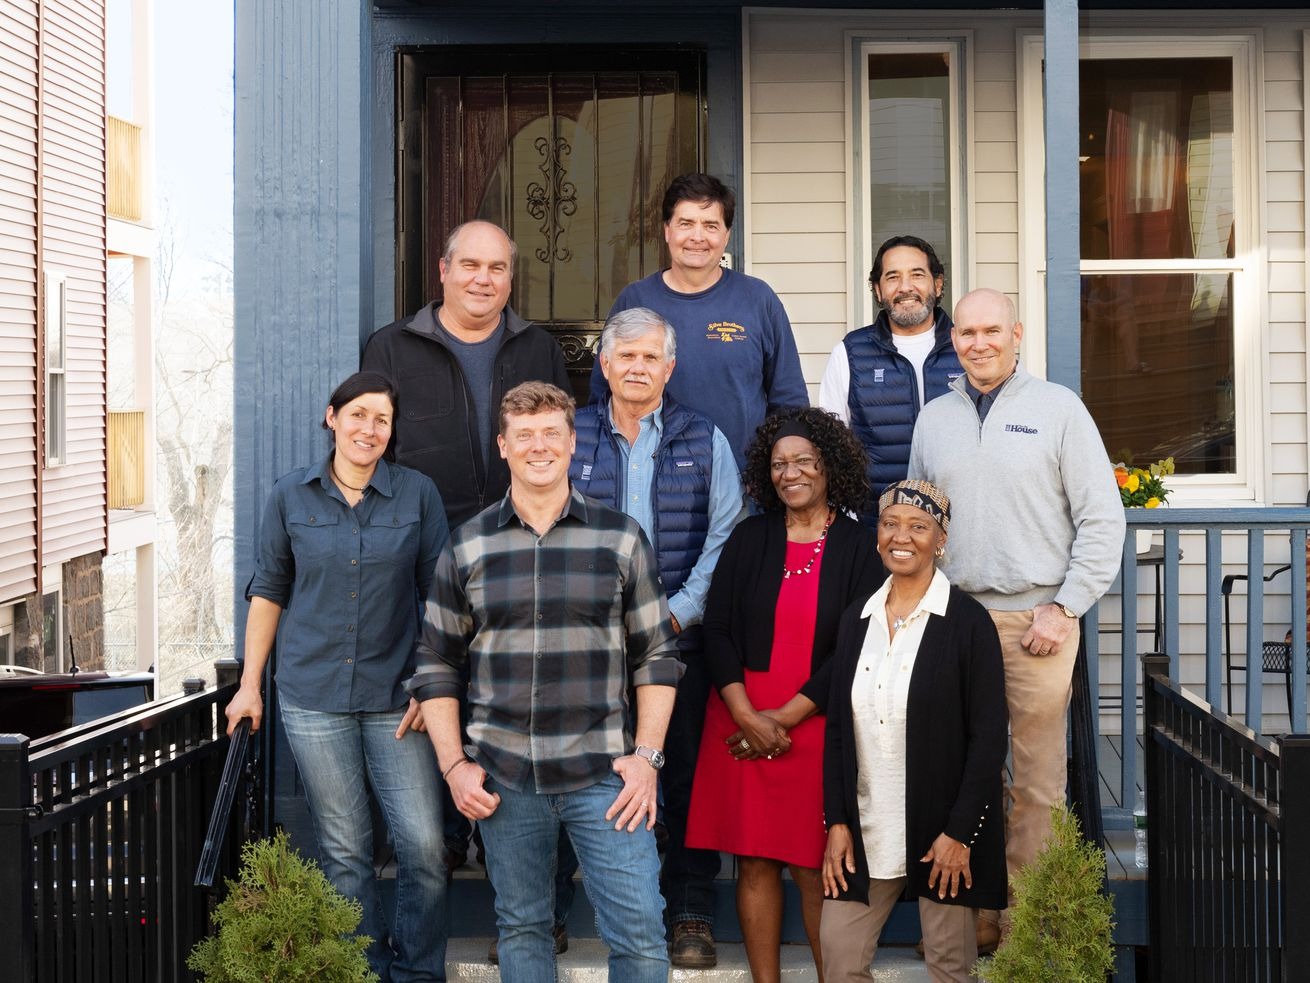 Fall 2021, Dorchester reveal, TOH crew and homeowners in front